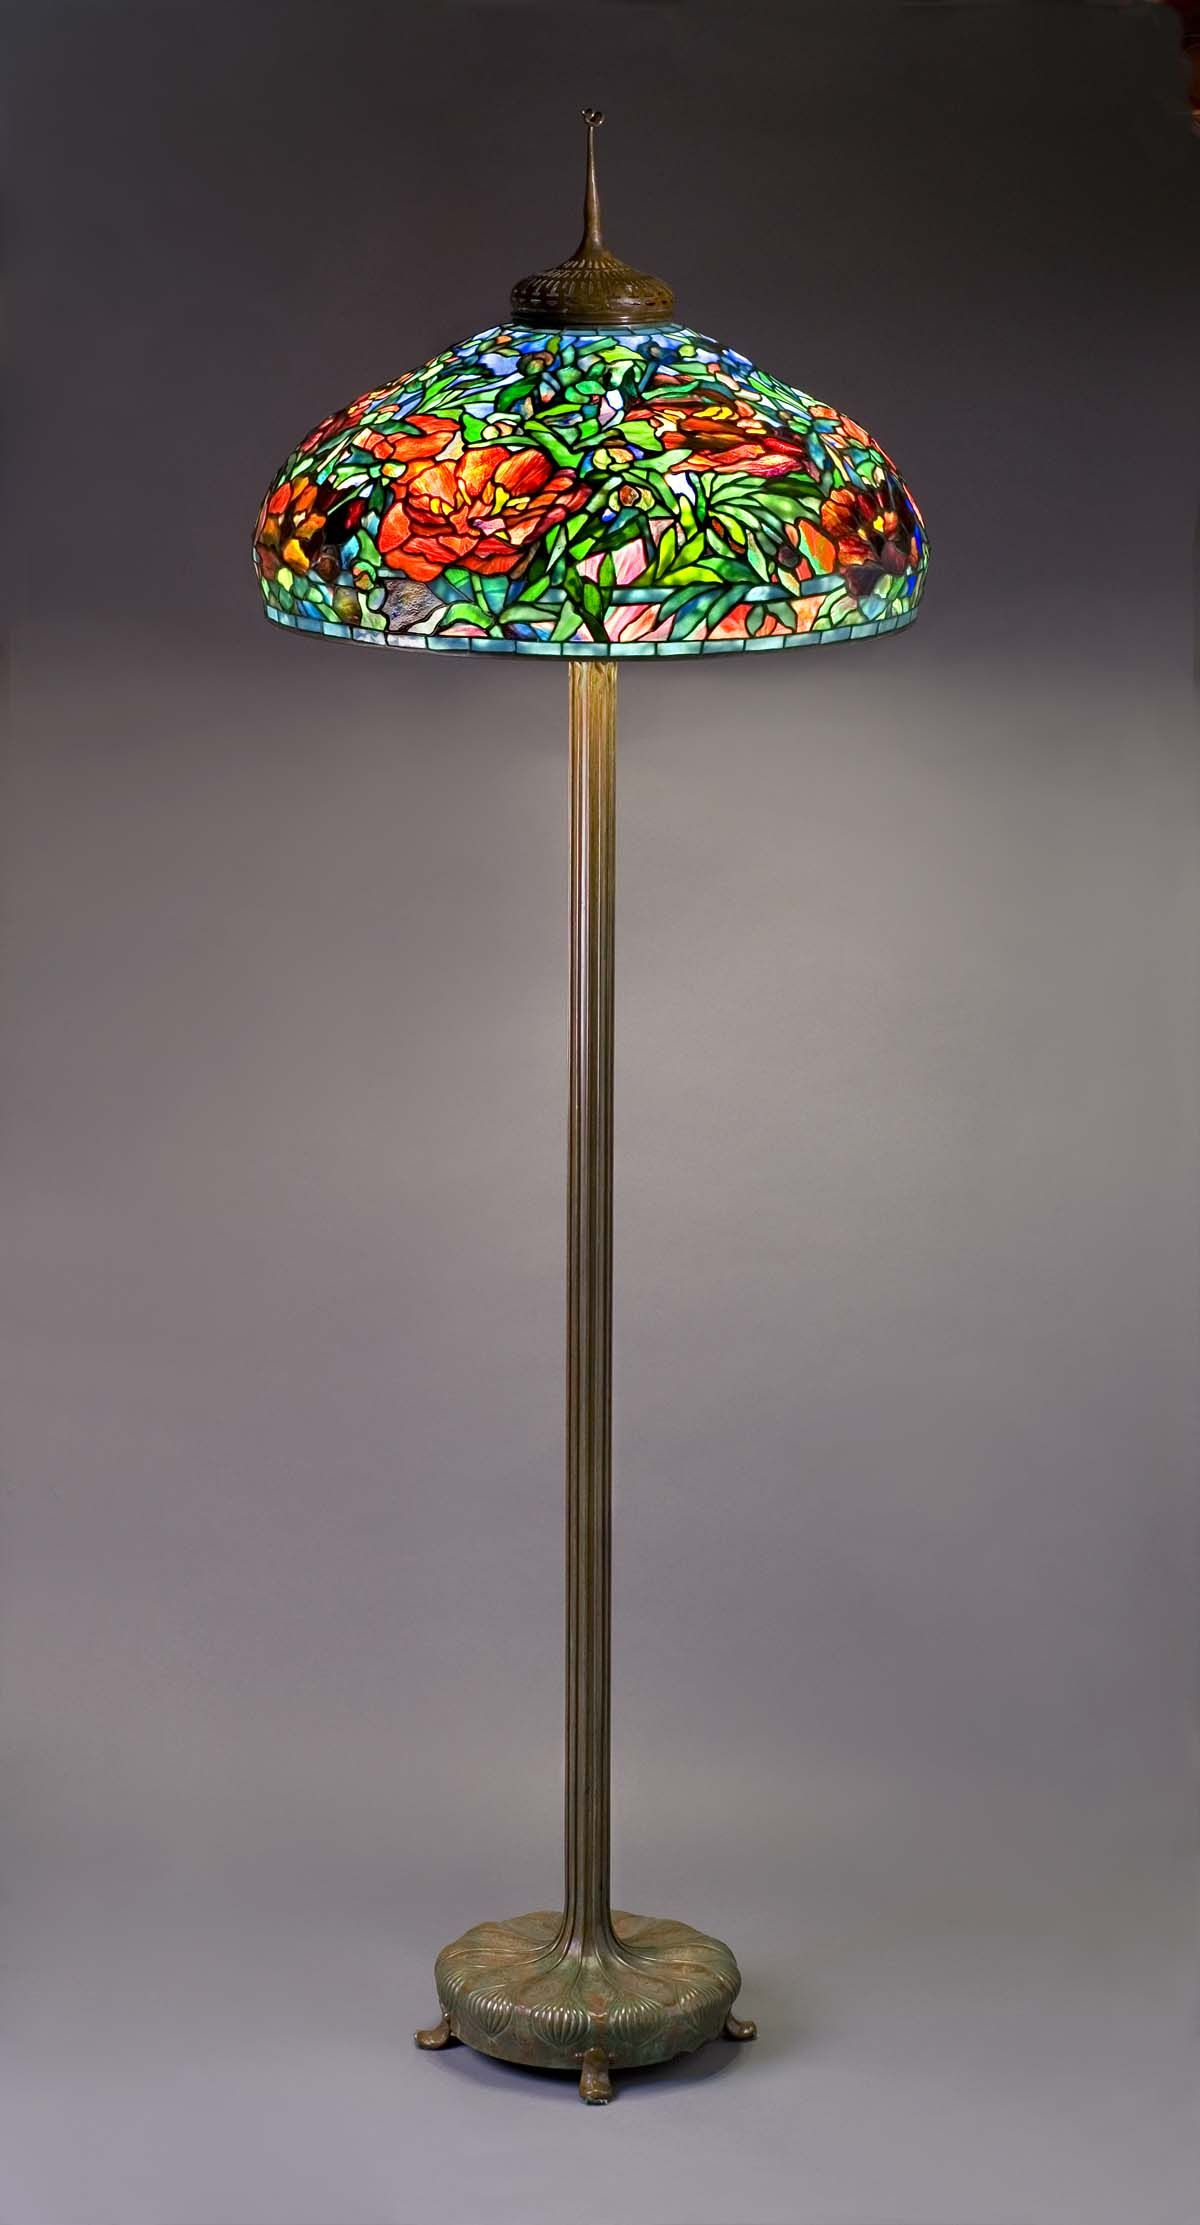 Tiffany Studios New York Favrile Leaded Glass And Patinated Bronze Peony Lamp Leaded Glass Tiffany Inspired Lamps Stained Glass Lamps